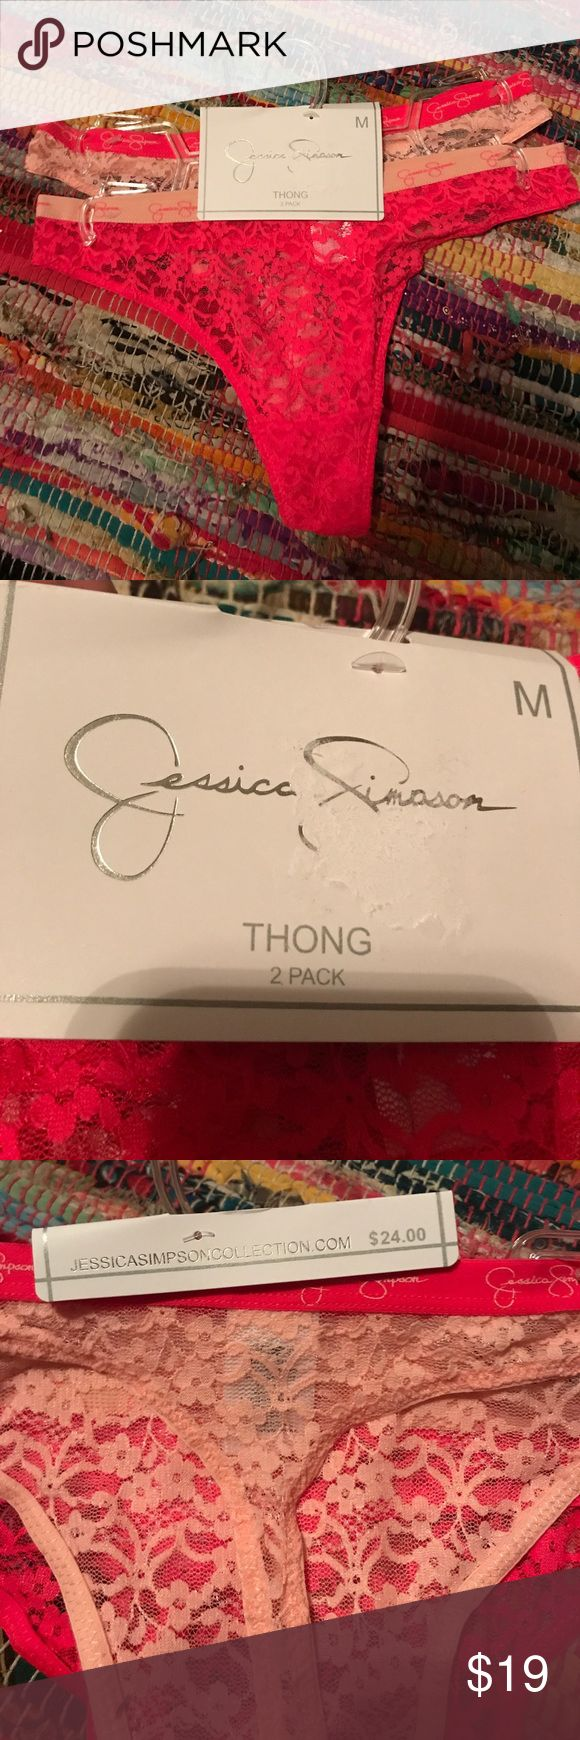 2 pack Jessica Simpson thongs NWT. Never been worn. light pink and hot pink floral print Lacey thongs. Still has the tags connected. The tag does have a mark/tear on it which is shown in photo Jessica Simpson Intimates & Sleepwear Panties